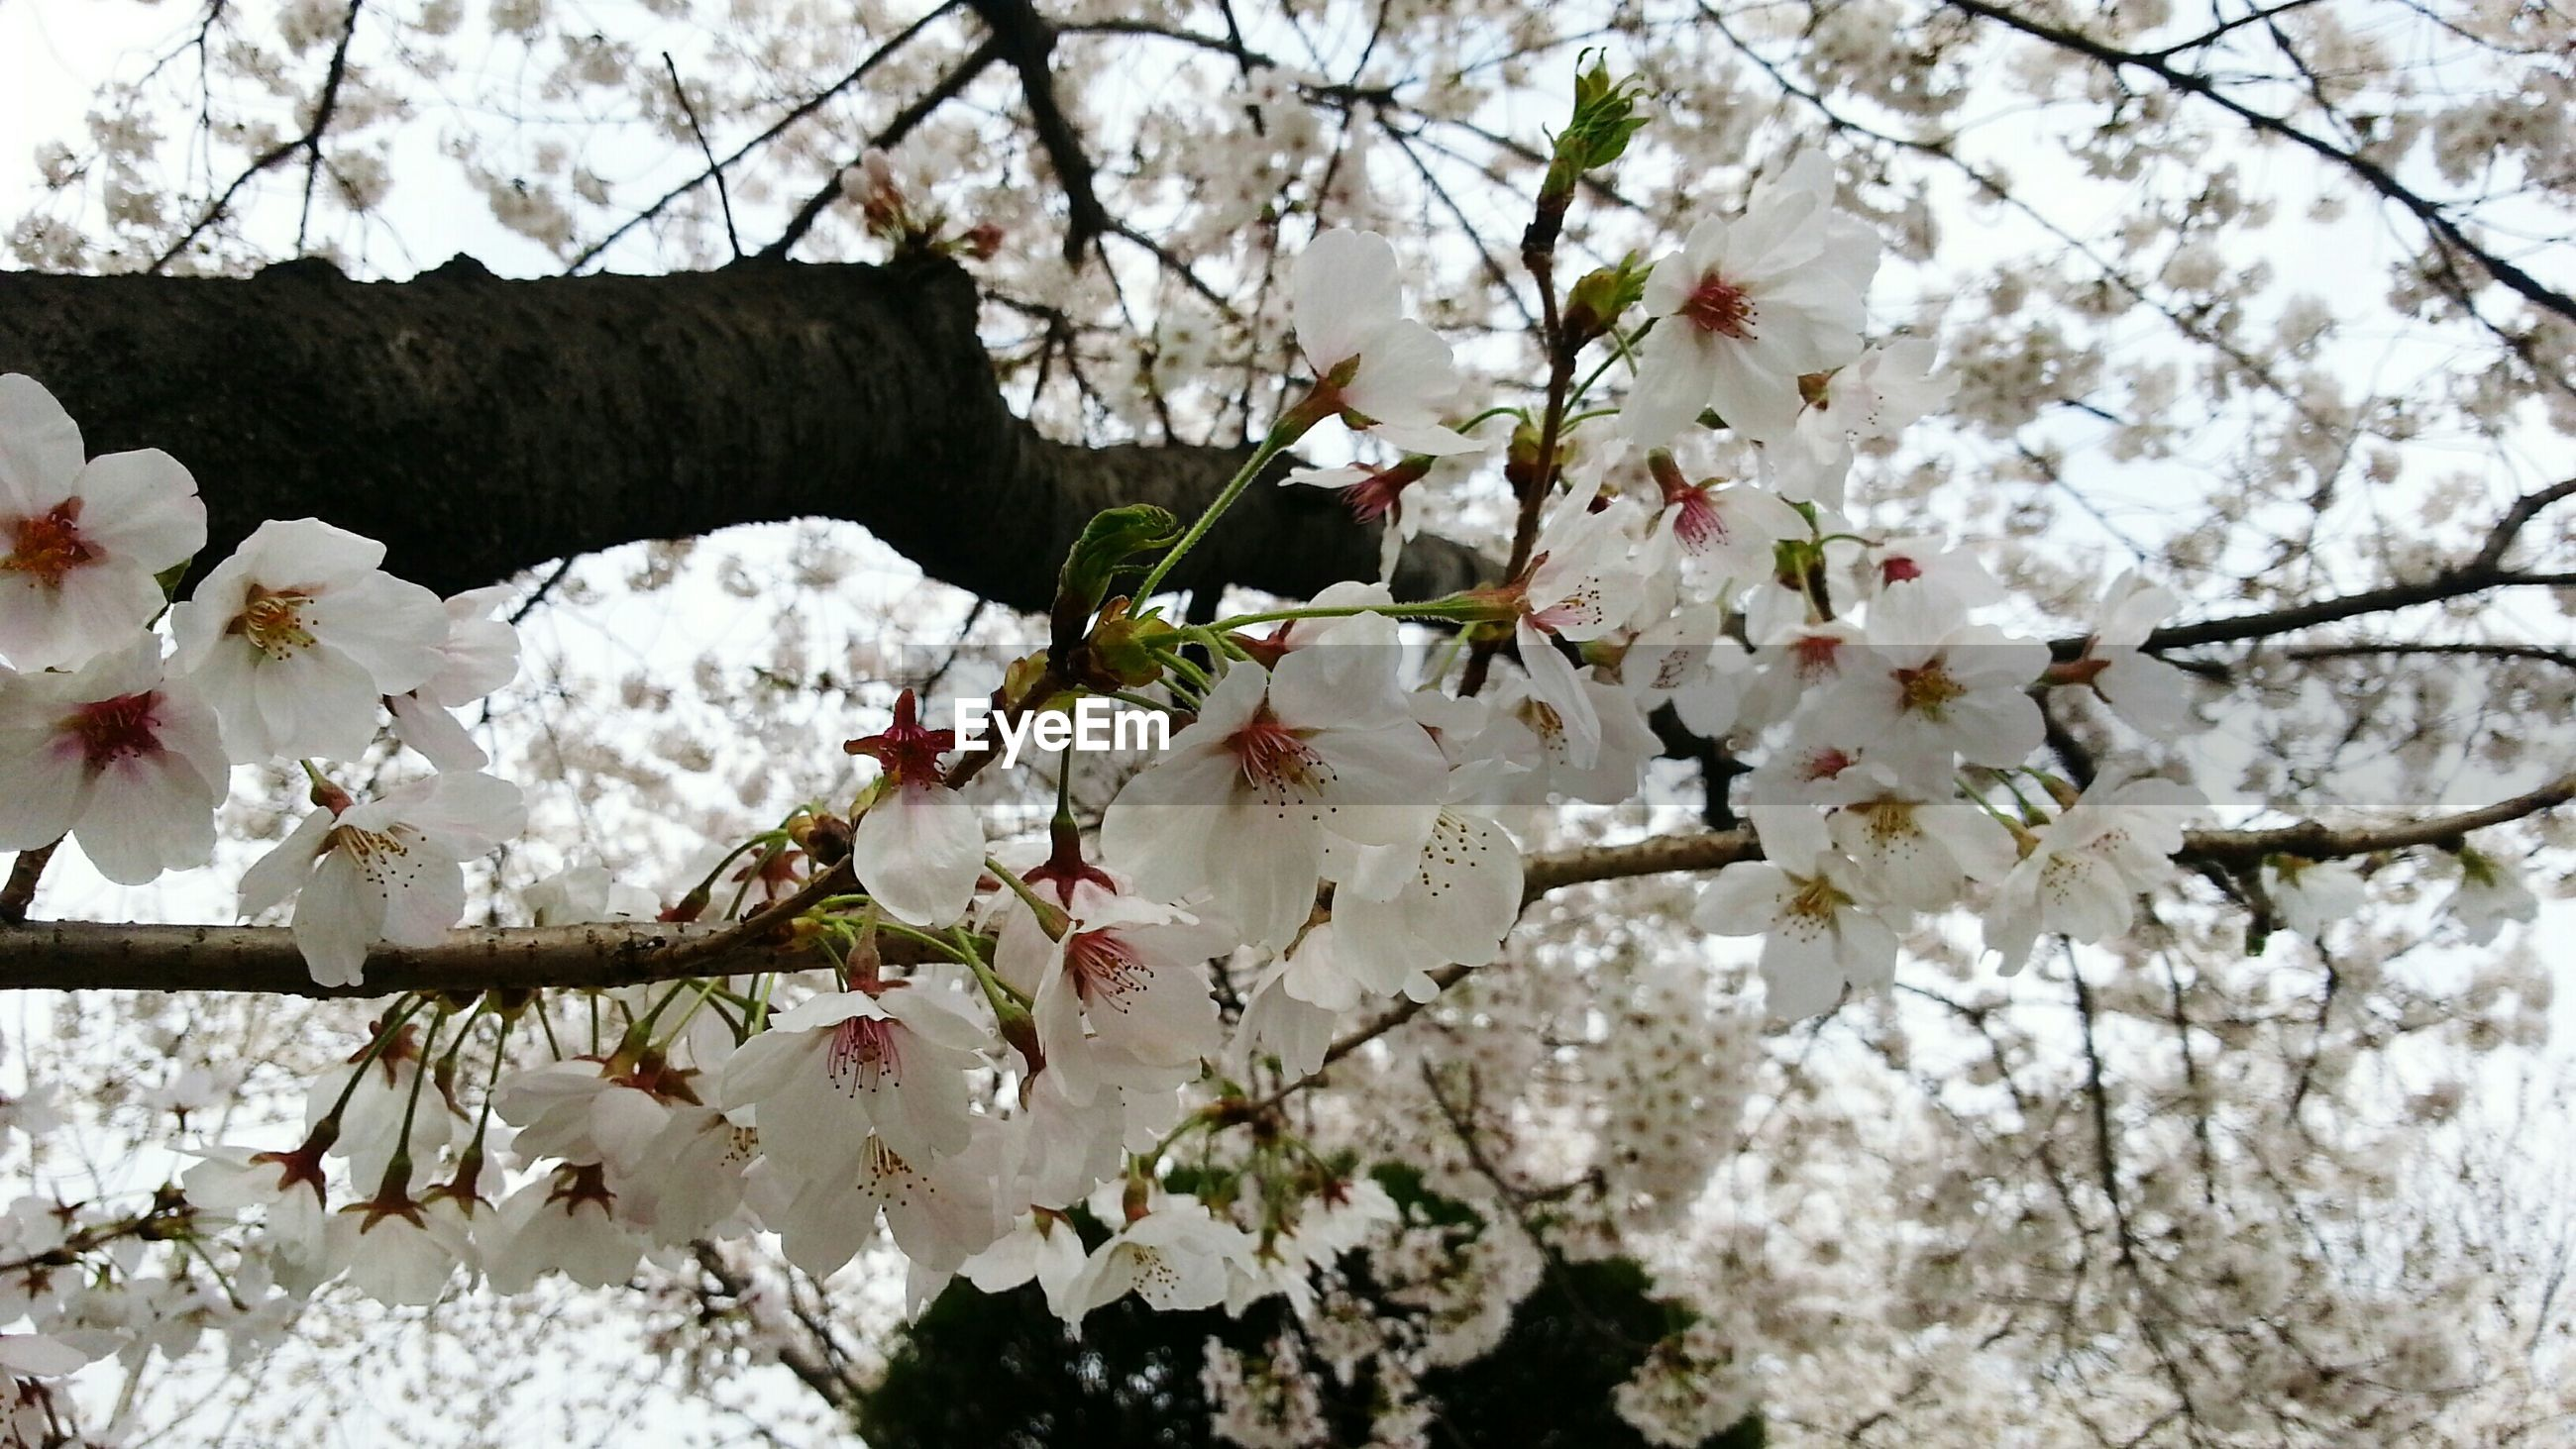 branch, flower, tree, cherry blossom, freshness, blossom, cherry tree, growth, fragility, white color, beauty in nature, nature, low angle view, fruit tree, apple tree, apple blossom, twig, springtime, in bloom, orchard